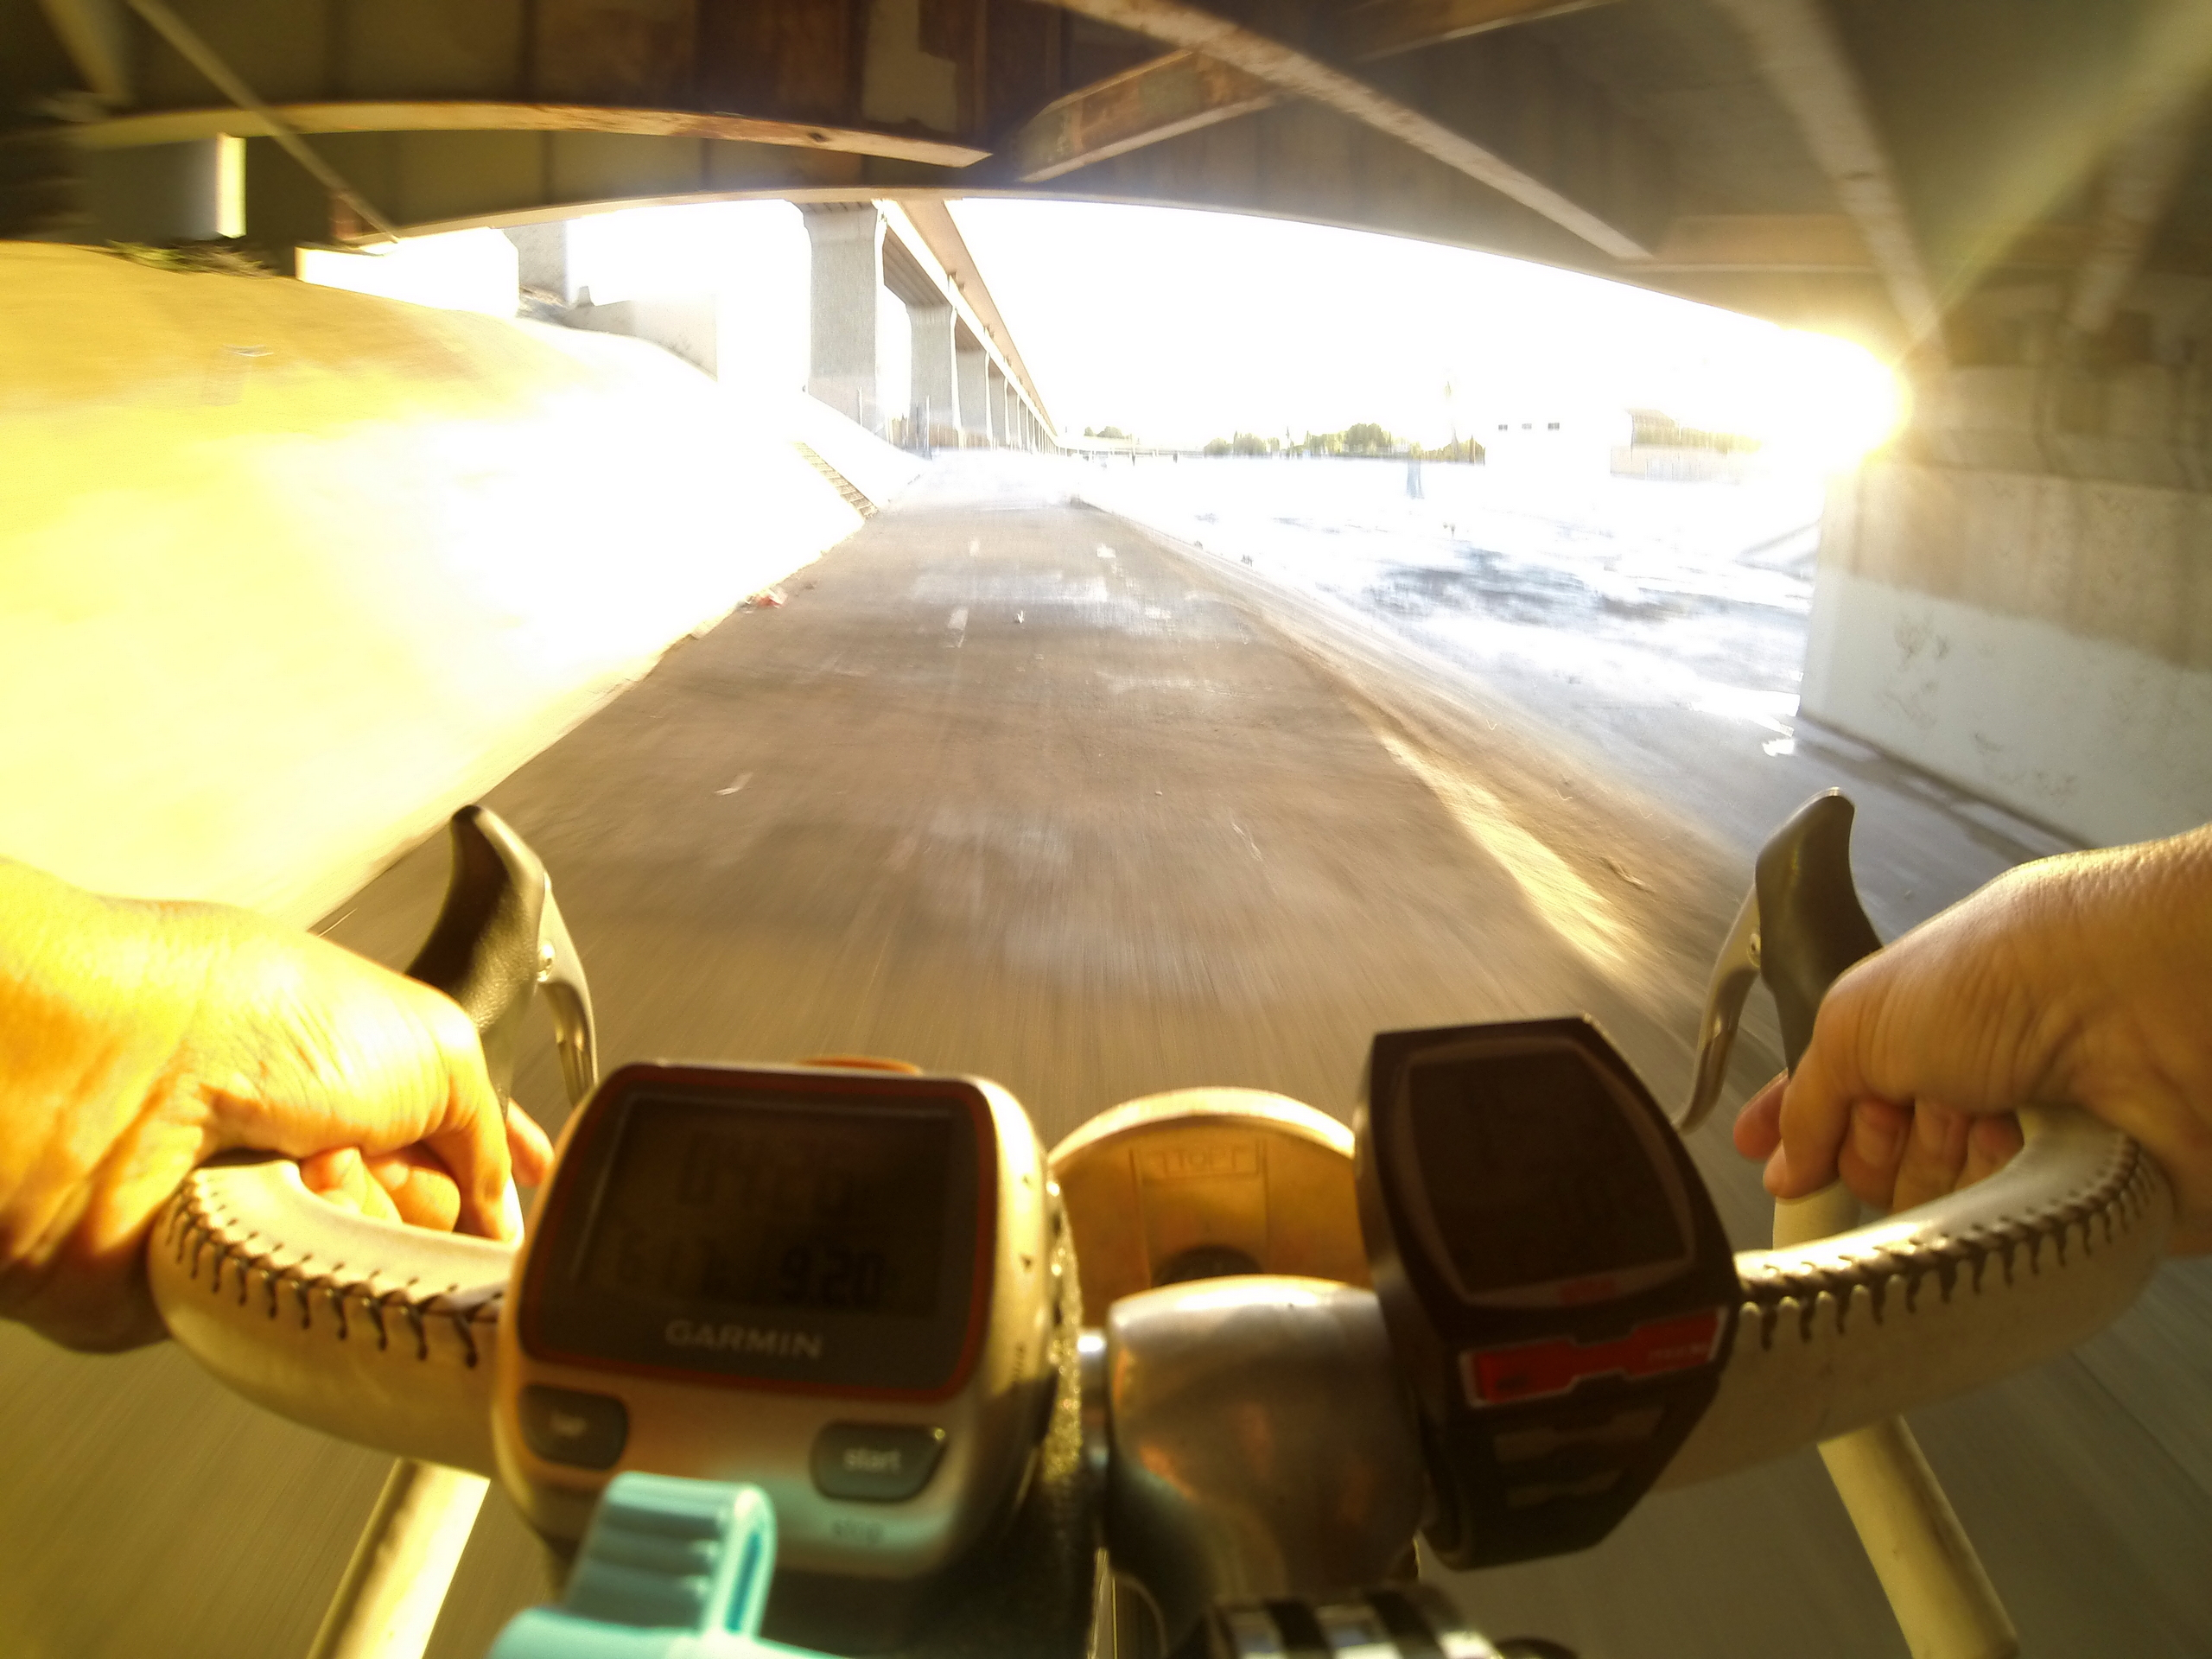 GoPro picture with camera mounted on my 10-speed handlebars looking out to the road